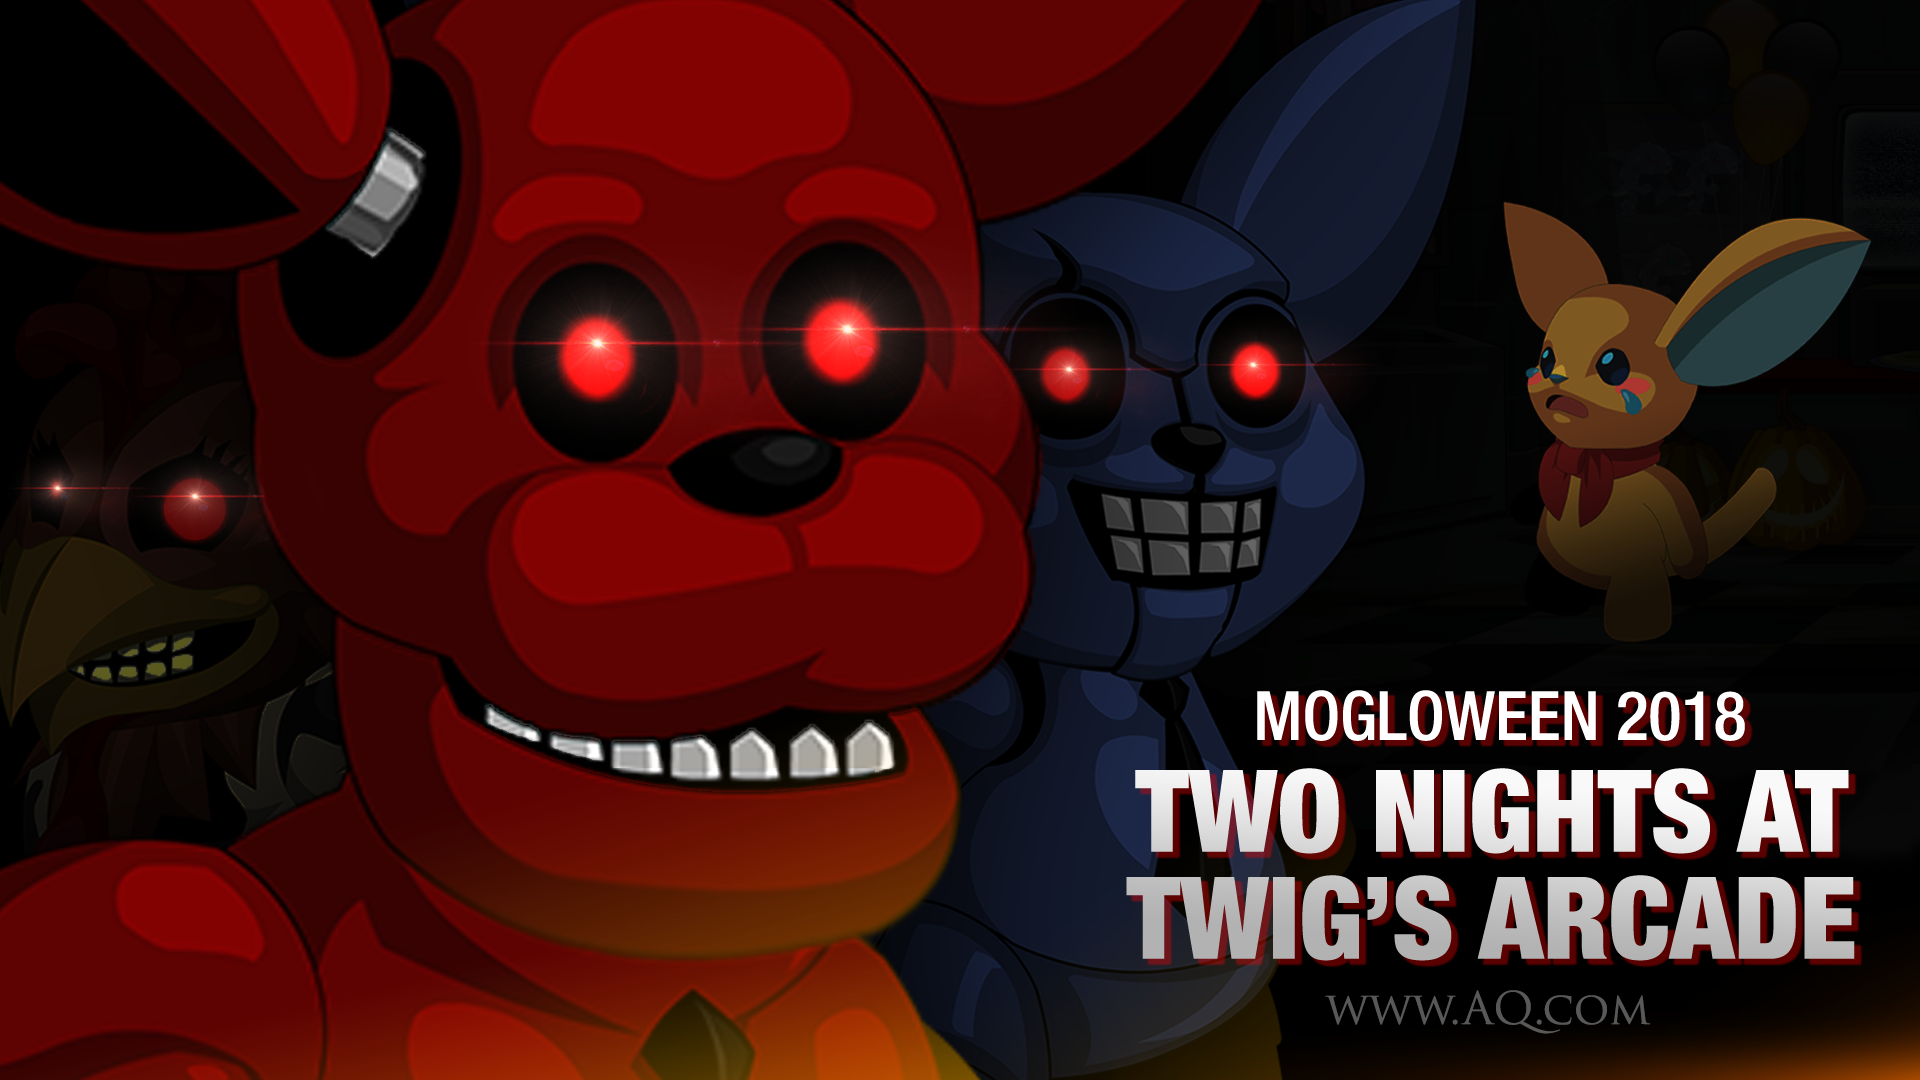 Two Nights at Twig's